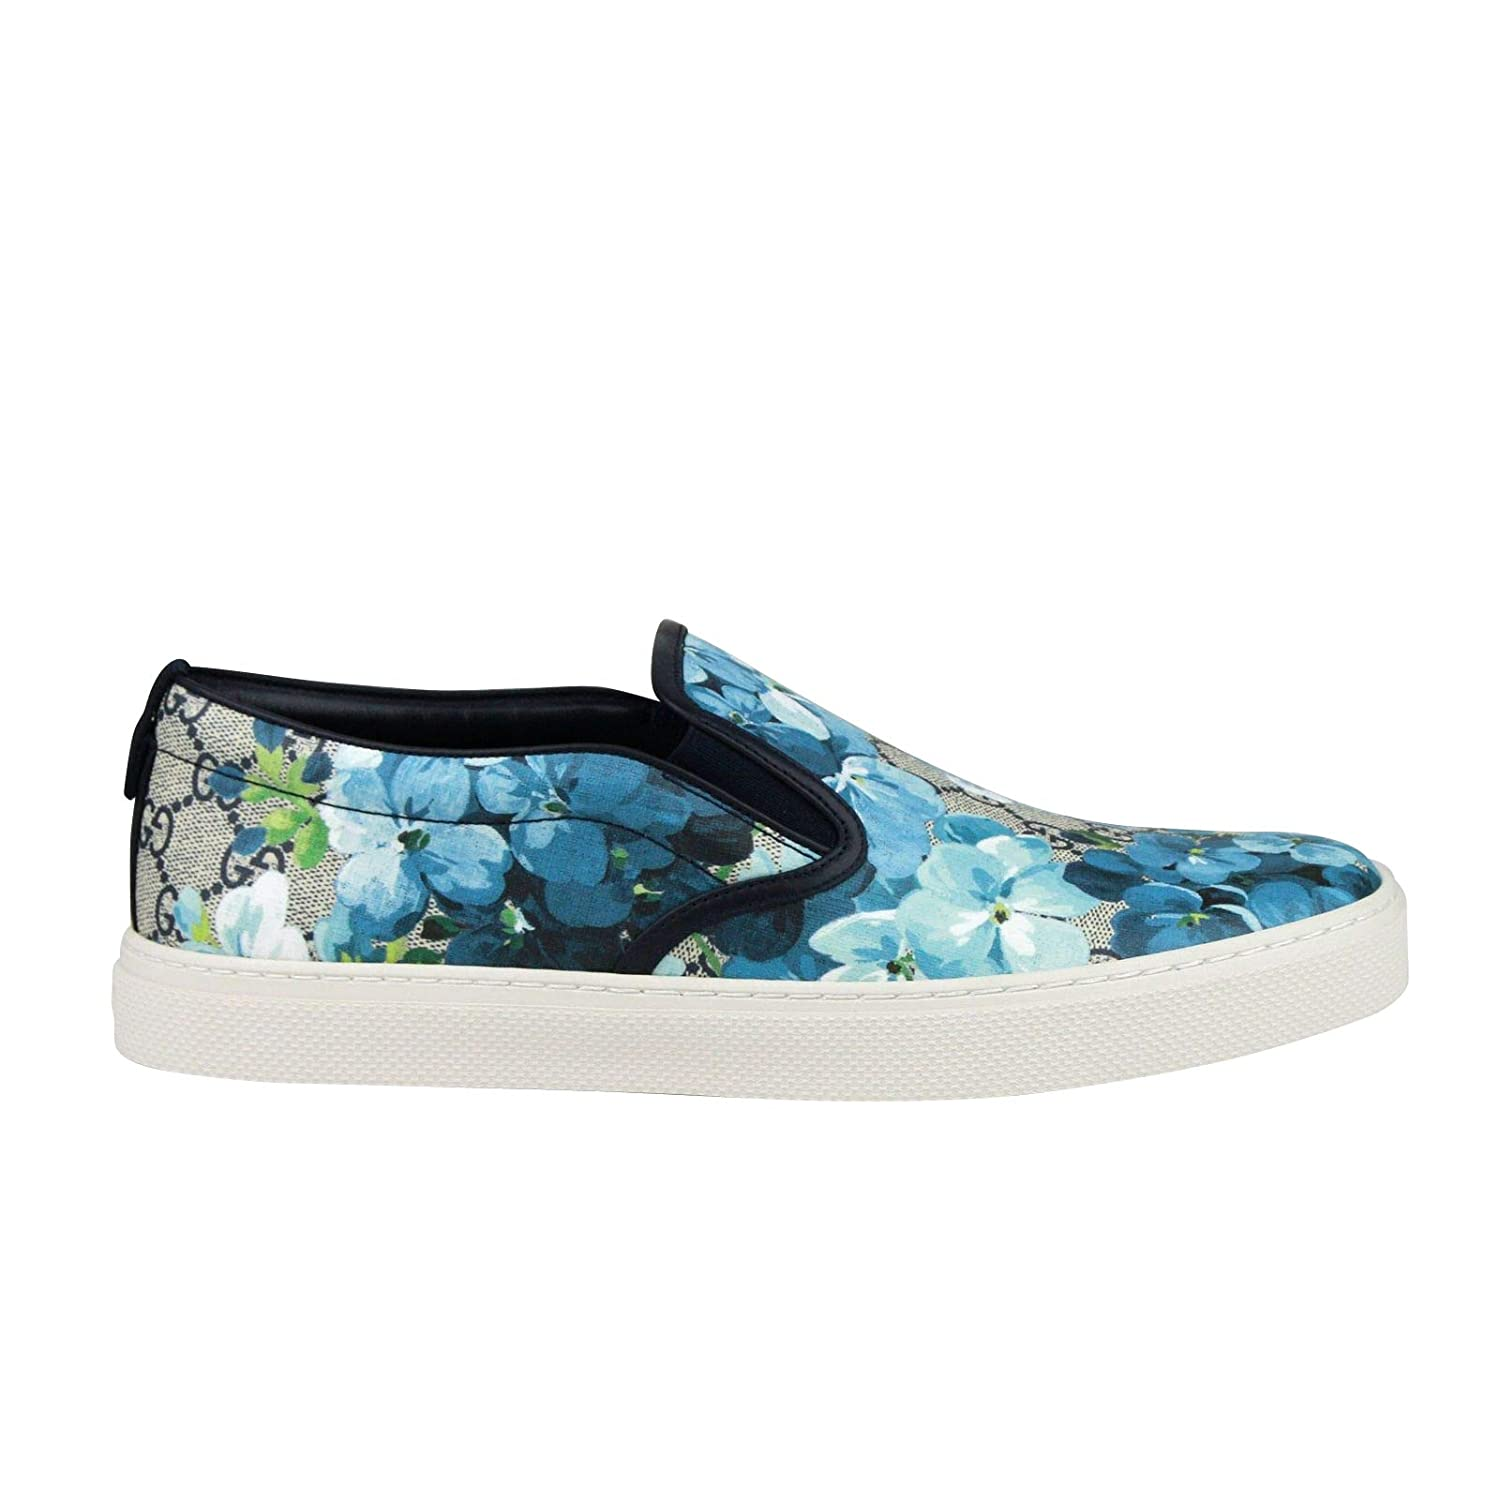 Com Gucci Bloom Flower Print Blue Gg Supreme Coated Canvas Slip Sneakers 407362 8471 Shoes